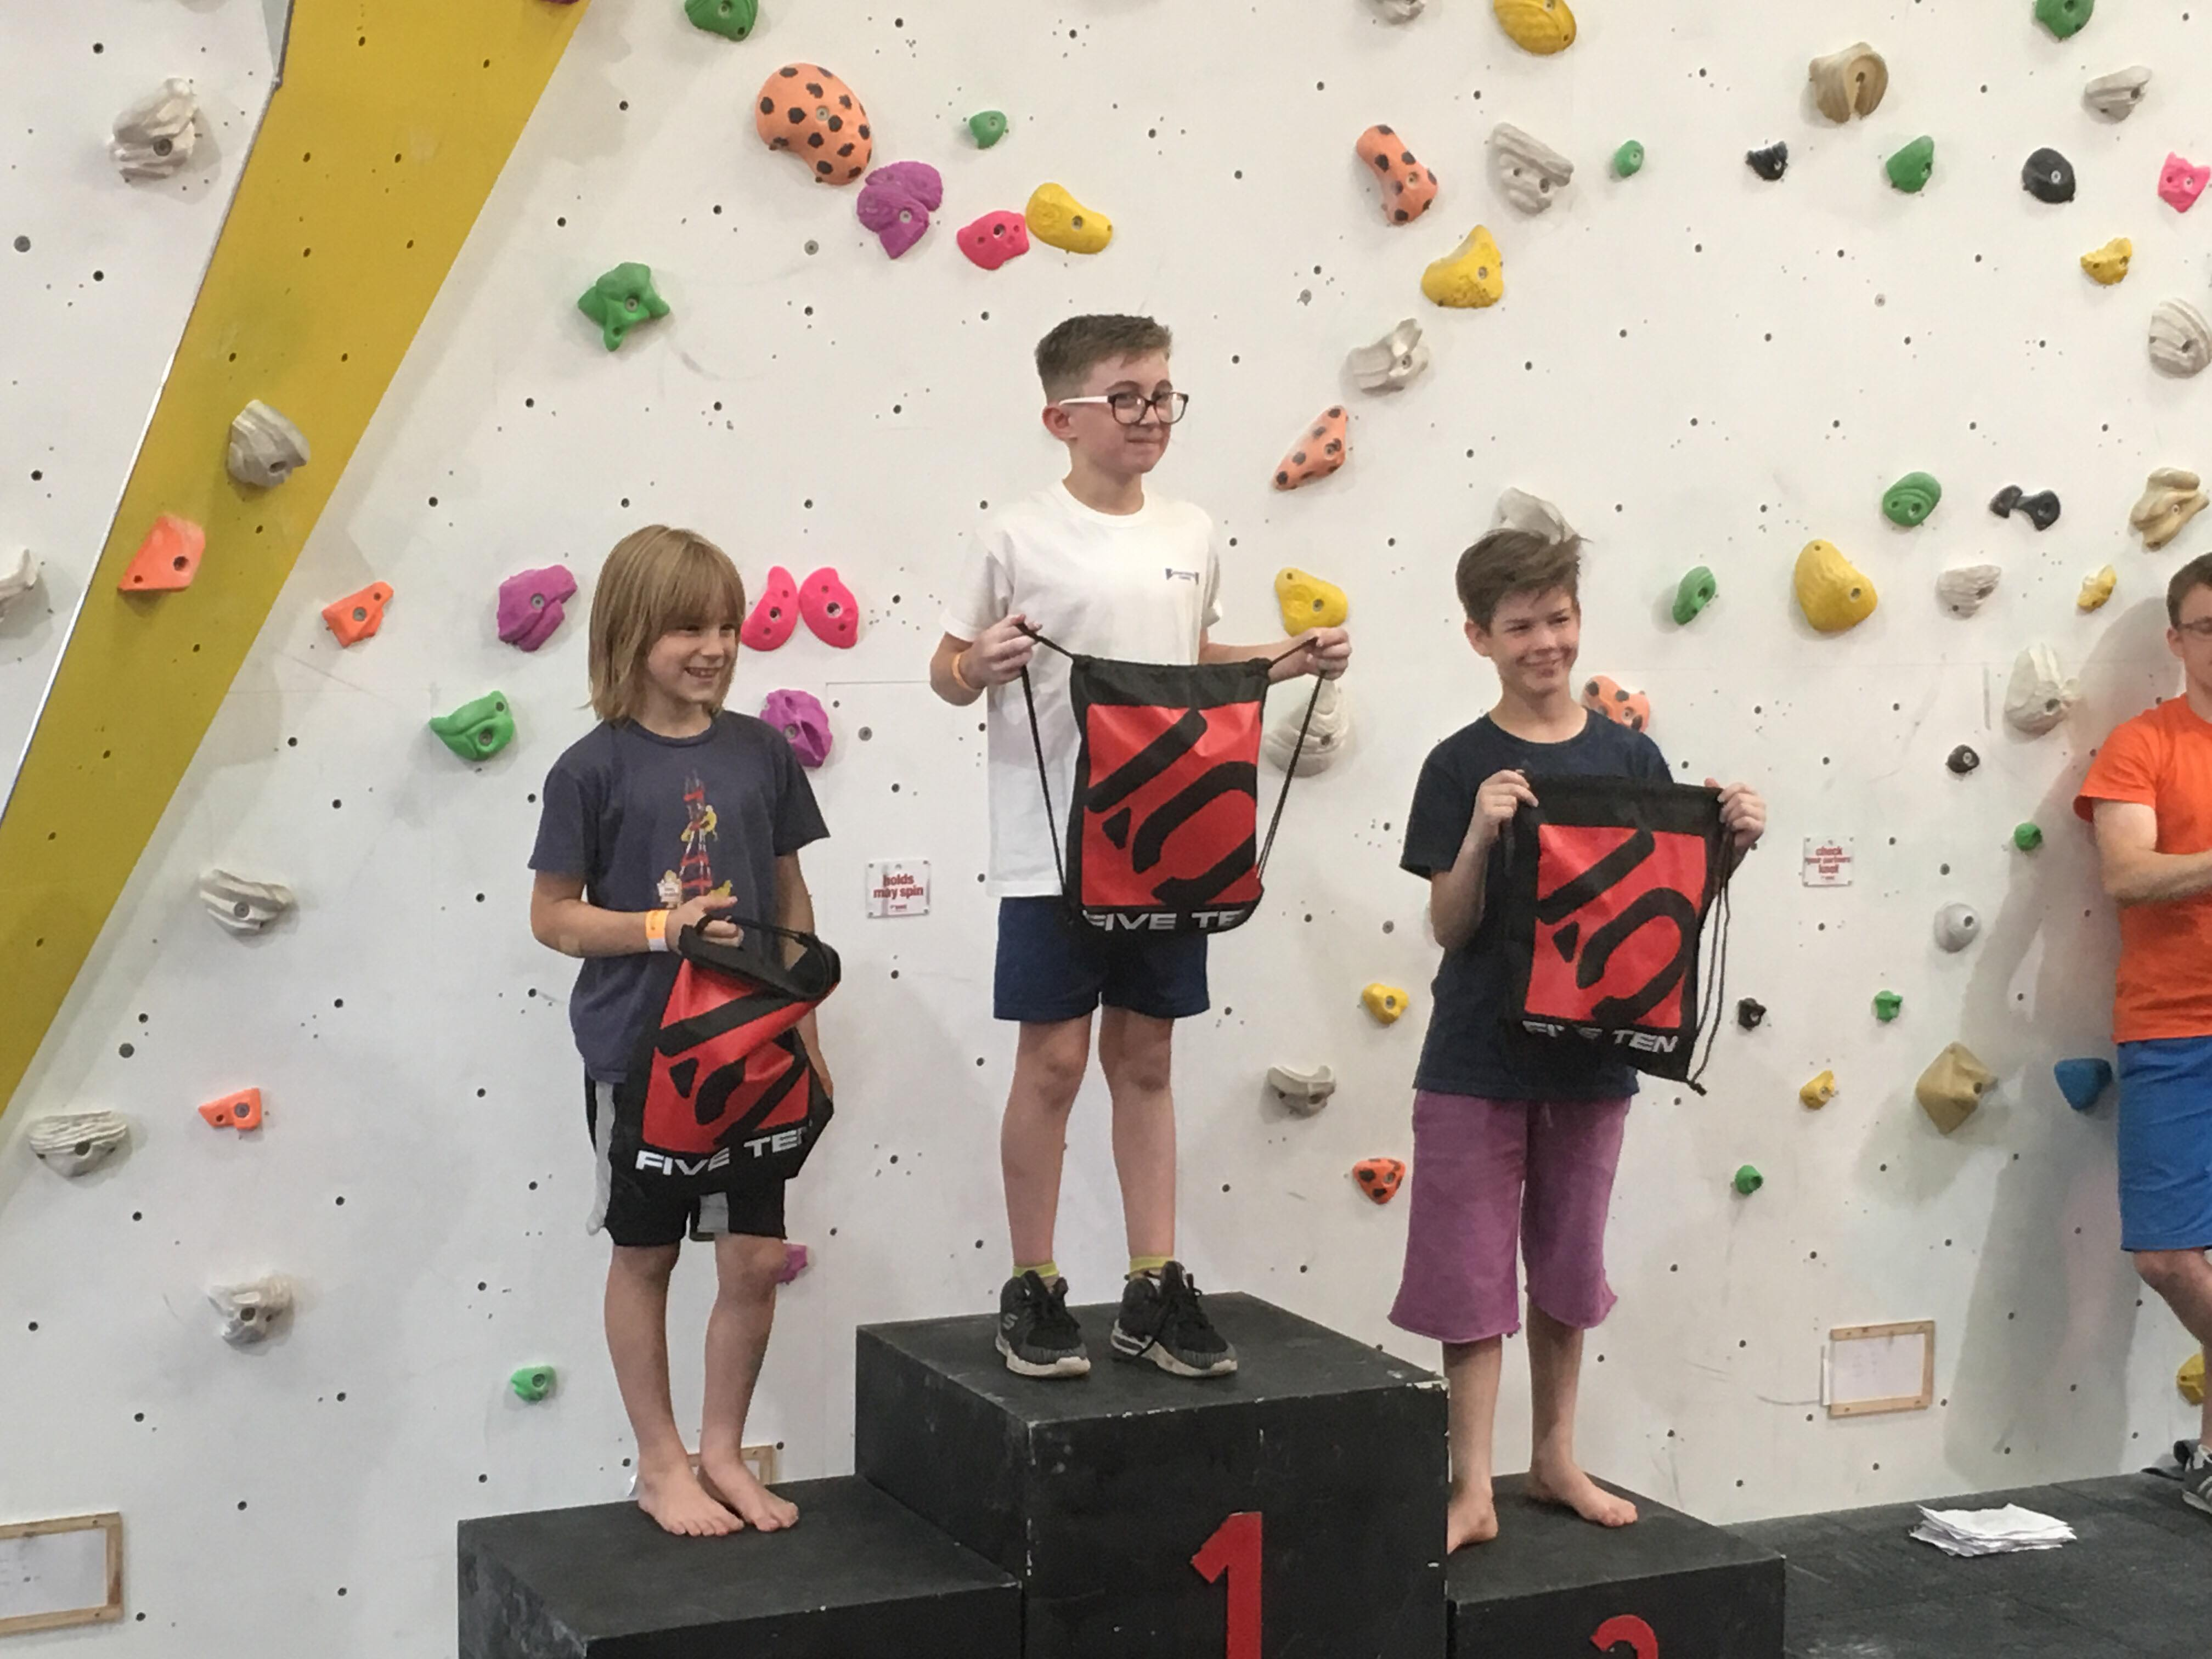 Oscar Preston takes 1st place on the podium at the Southern Youth Bouldering Championships